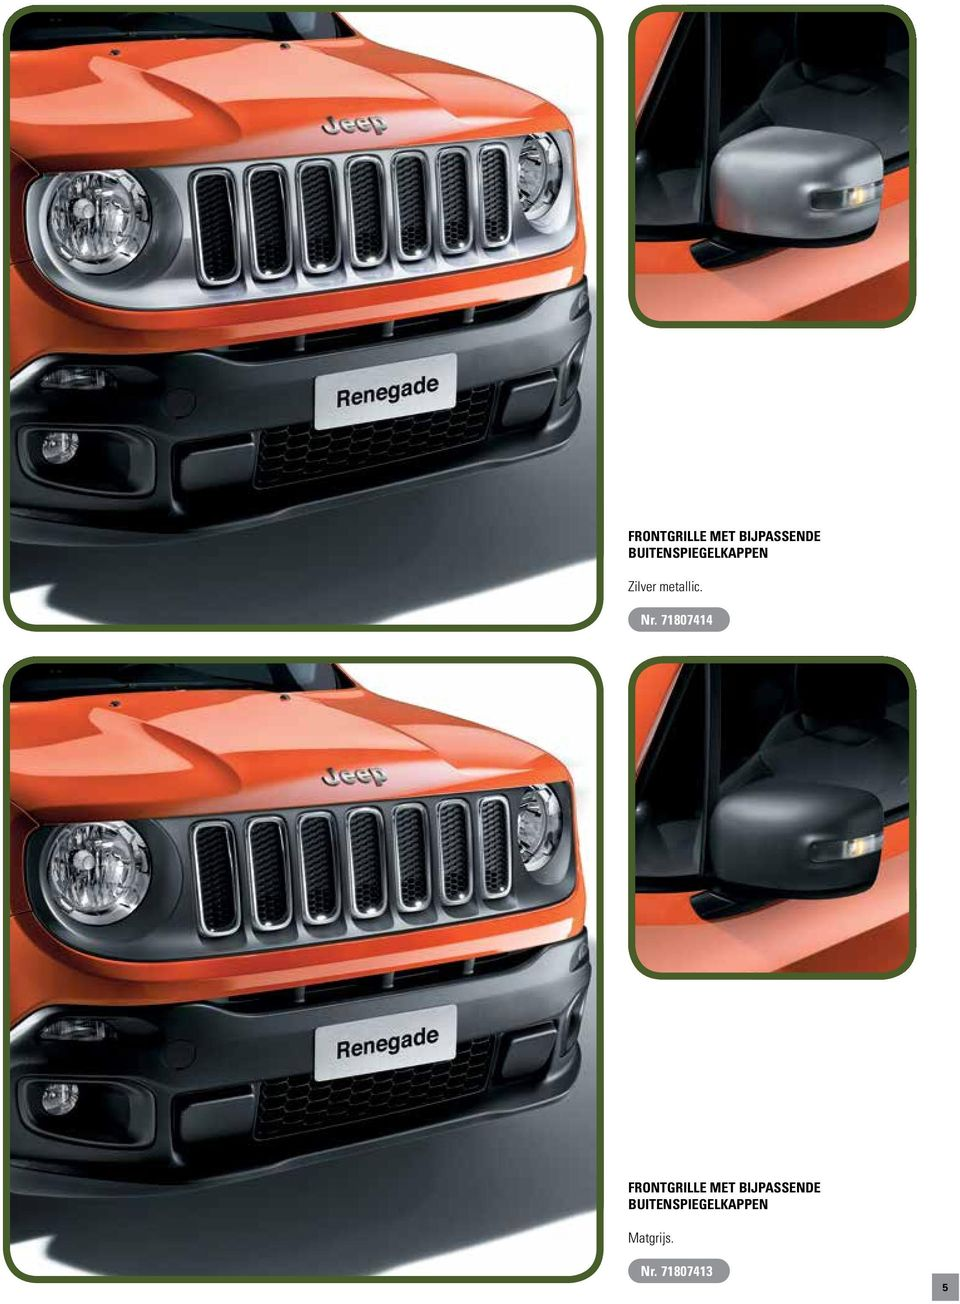 jeep renegade accessoires pdf. Black Bedroom Furniture Sets. Home Design Ideas